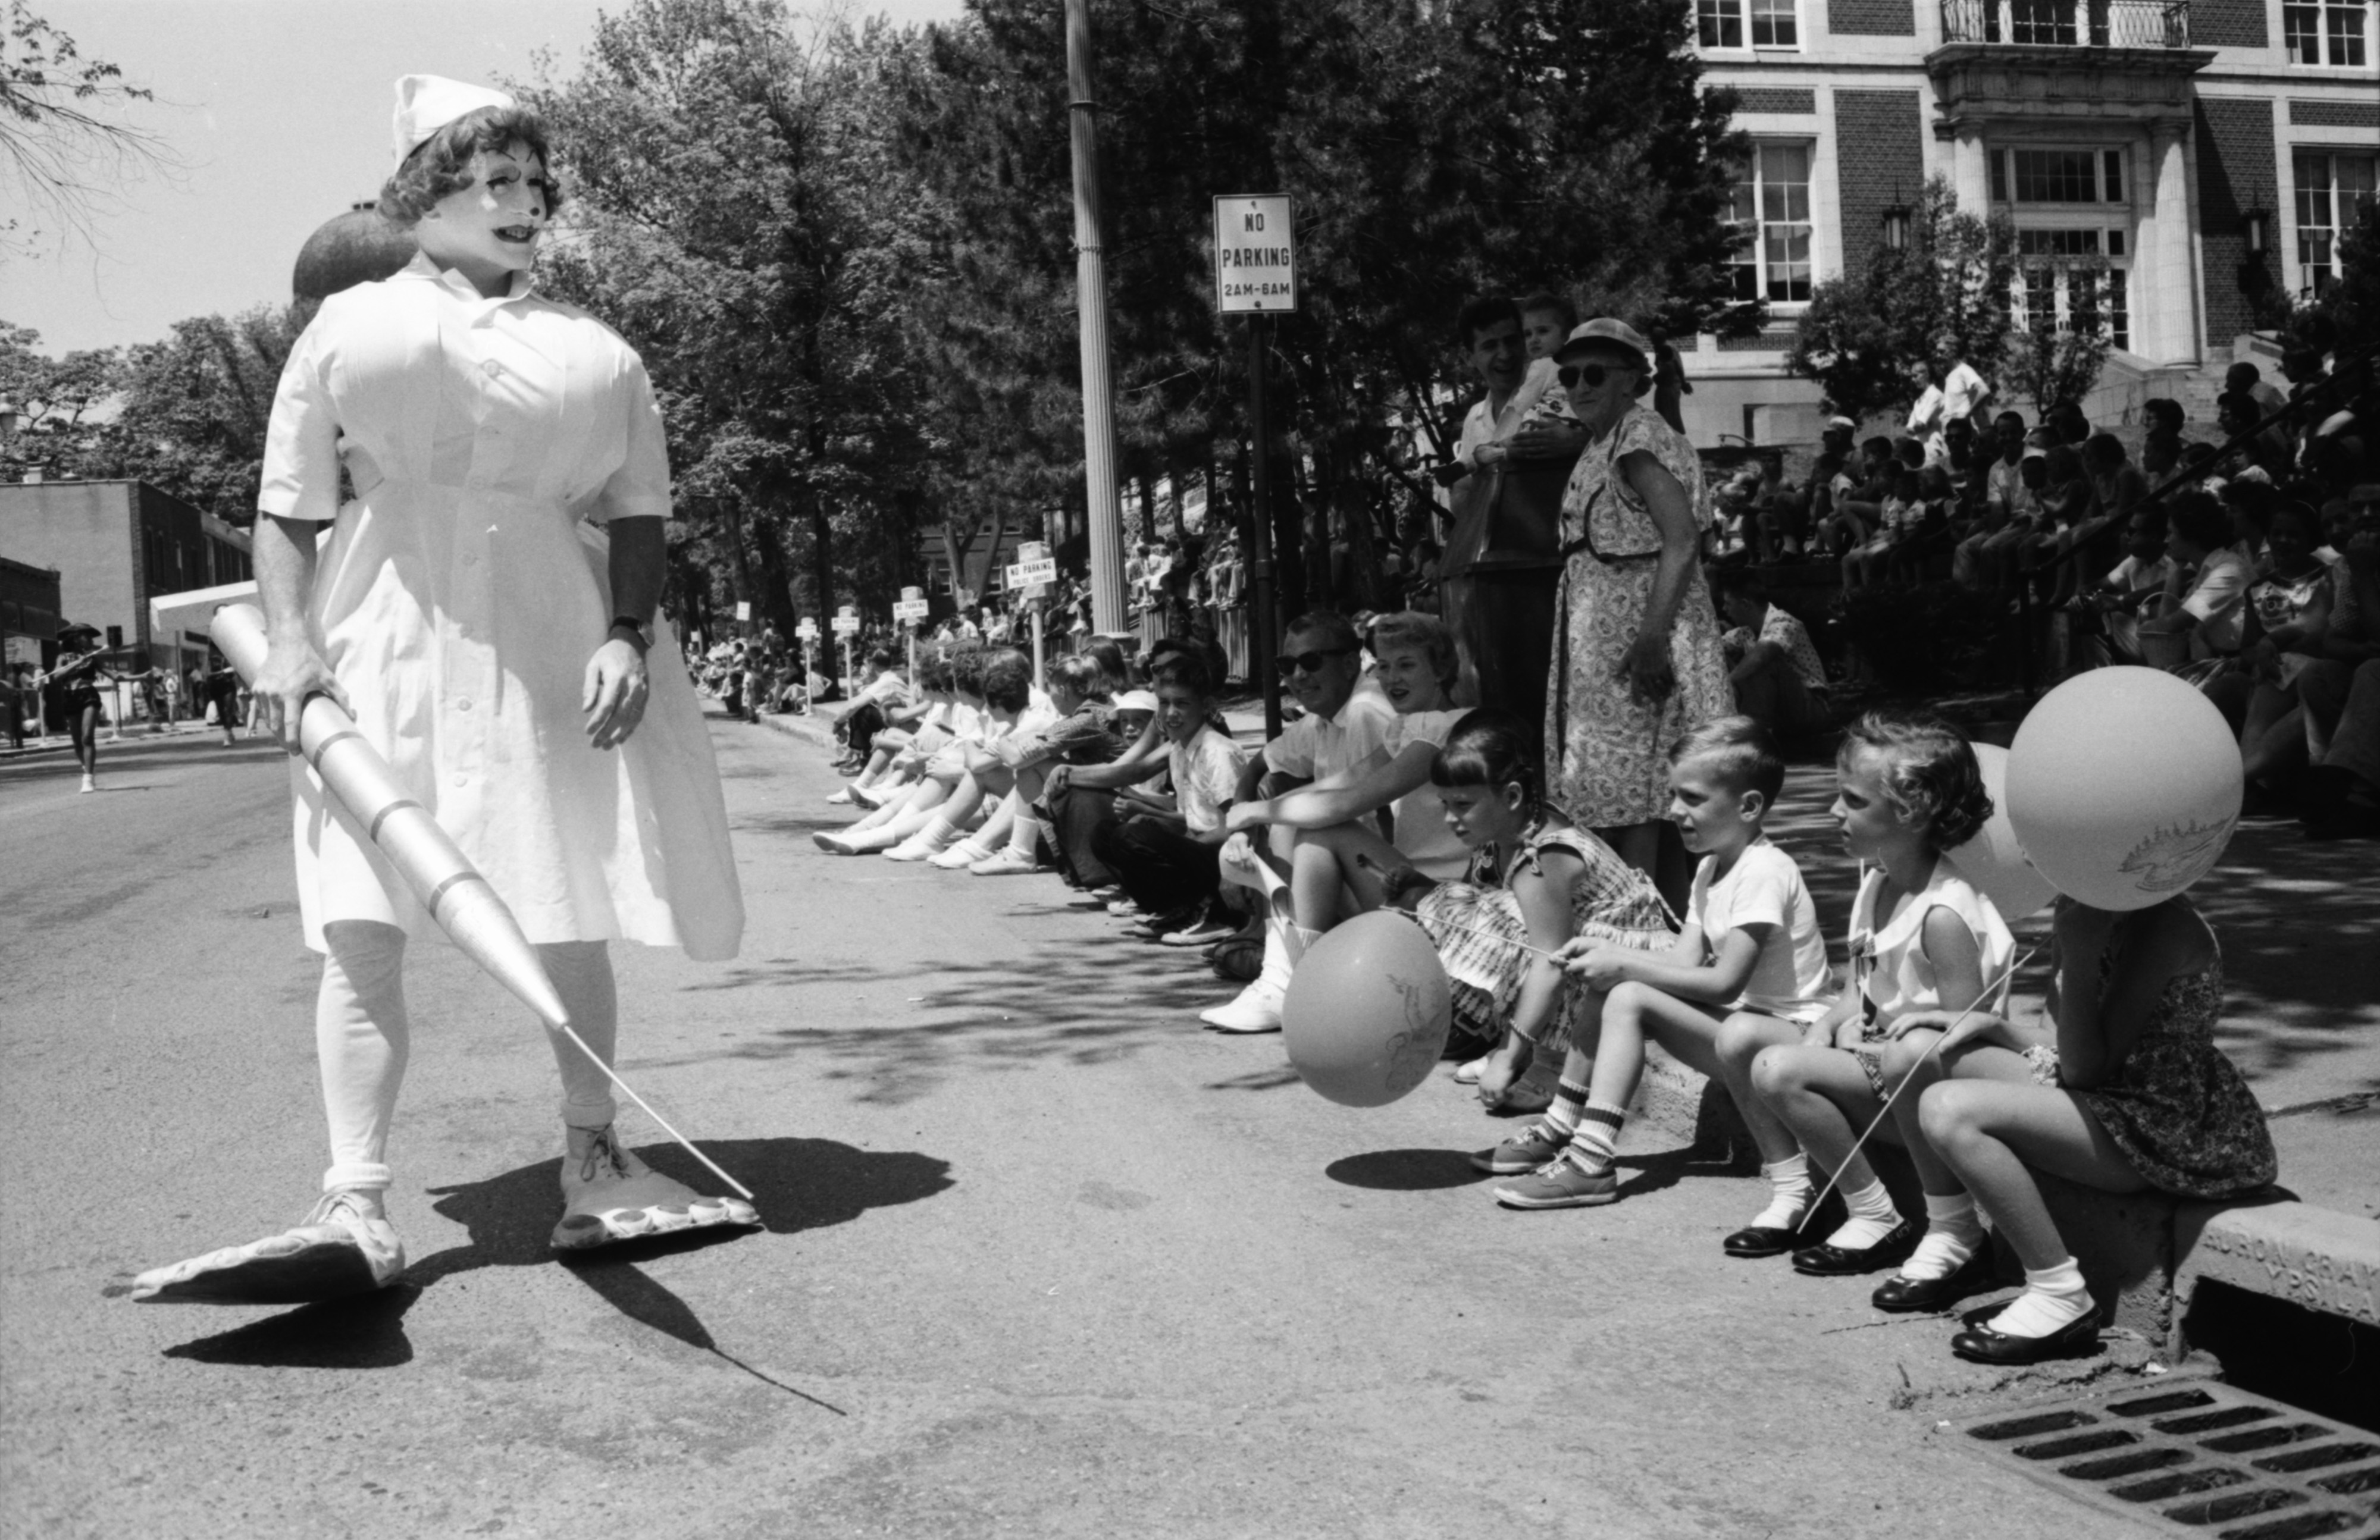 Robert K. Fashbaugh In Clown Nurse Costume For The Ypsilanti Fourth Of July Parade, July 1959 image